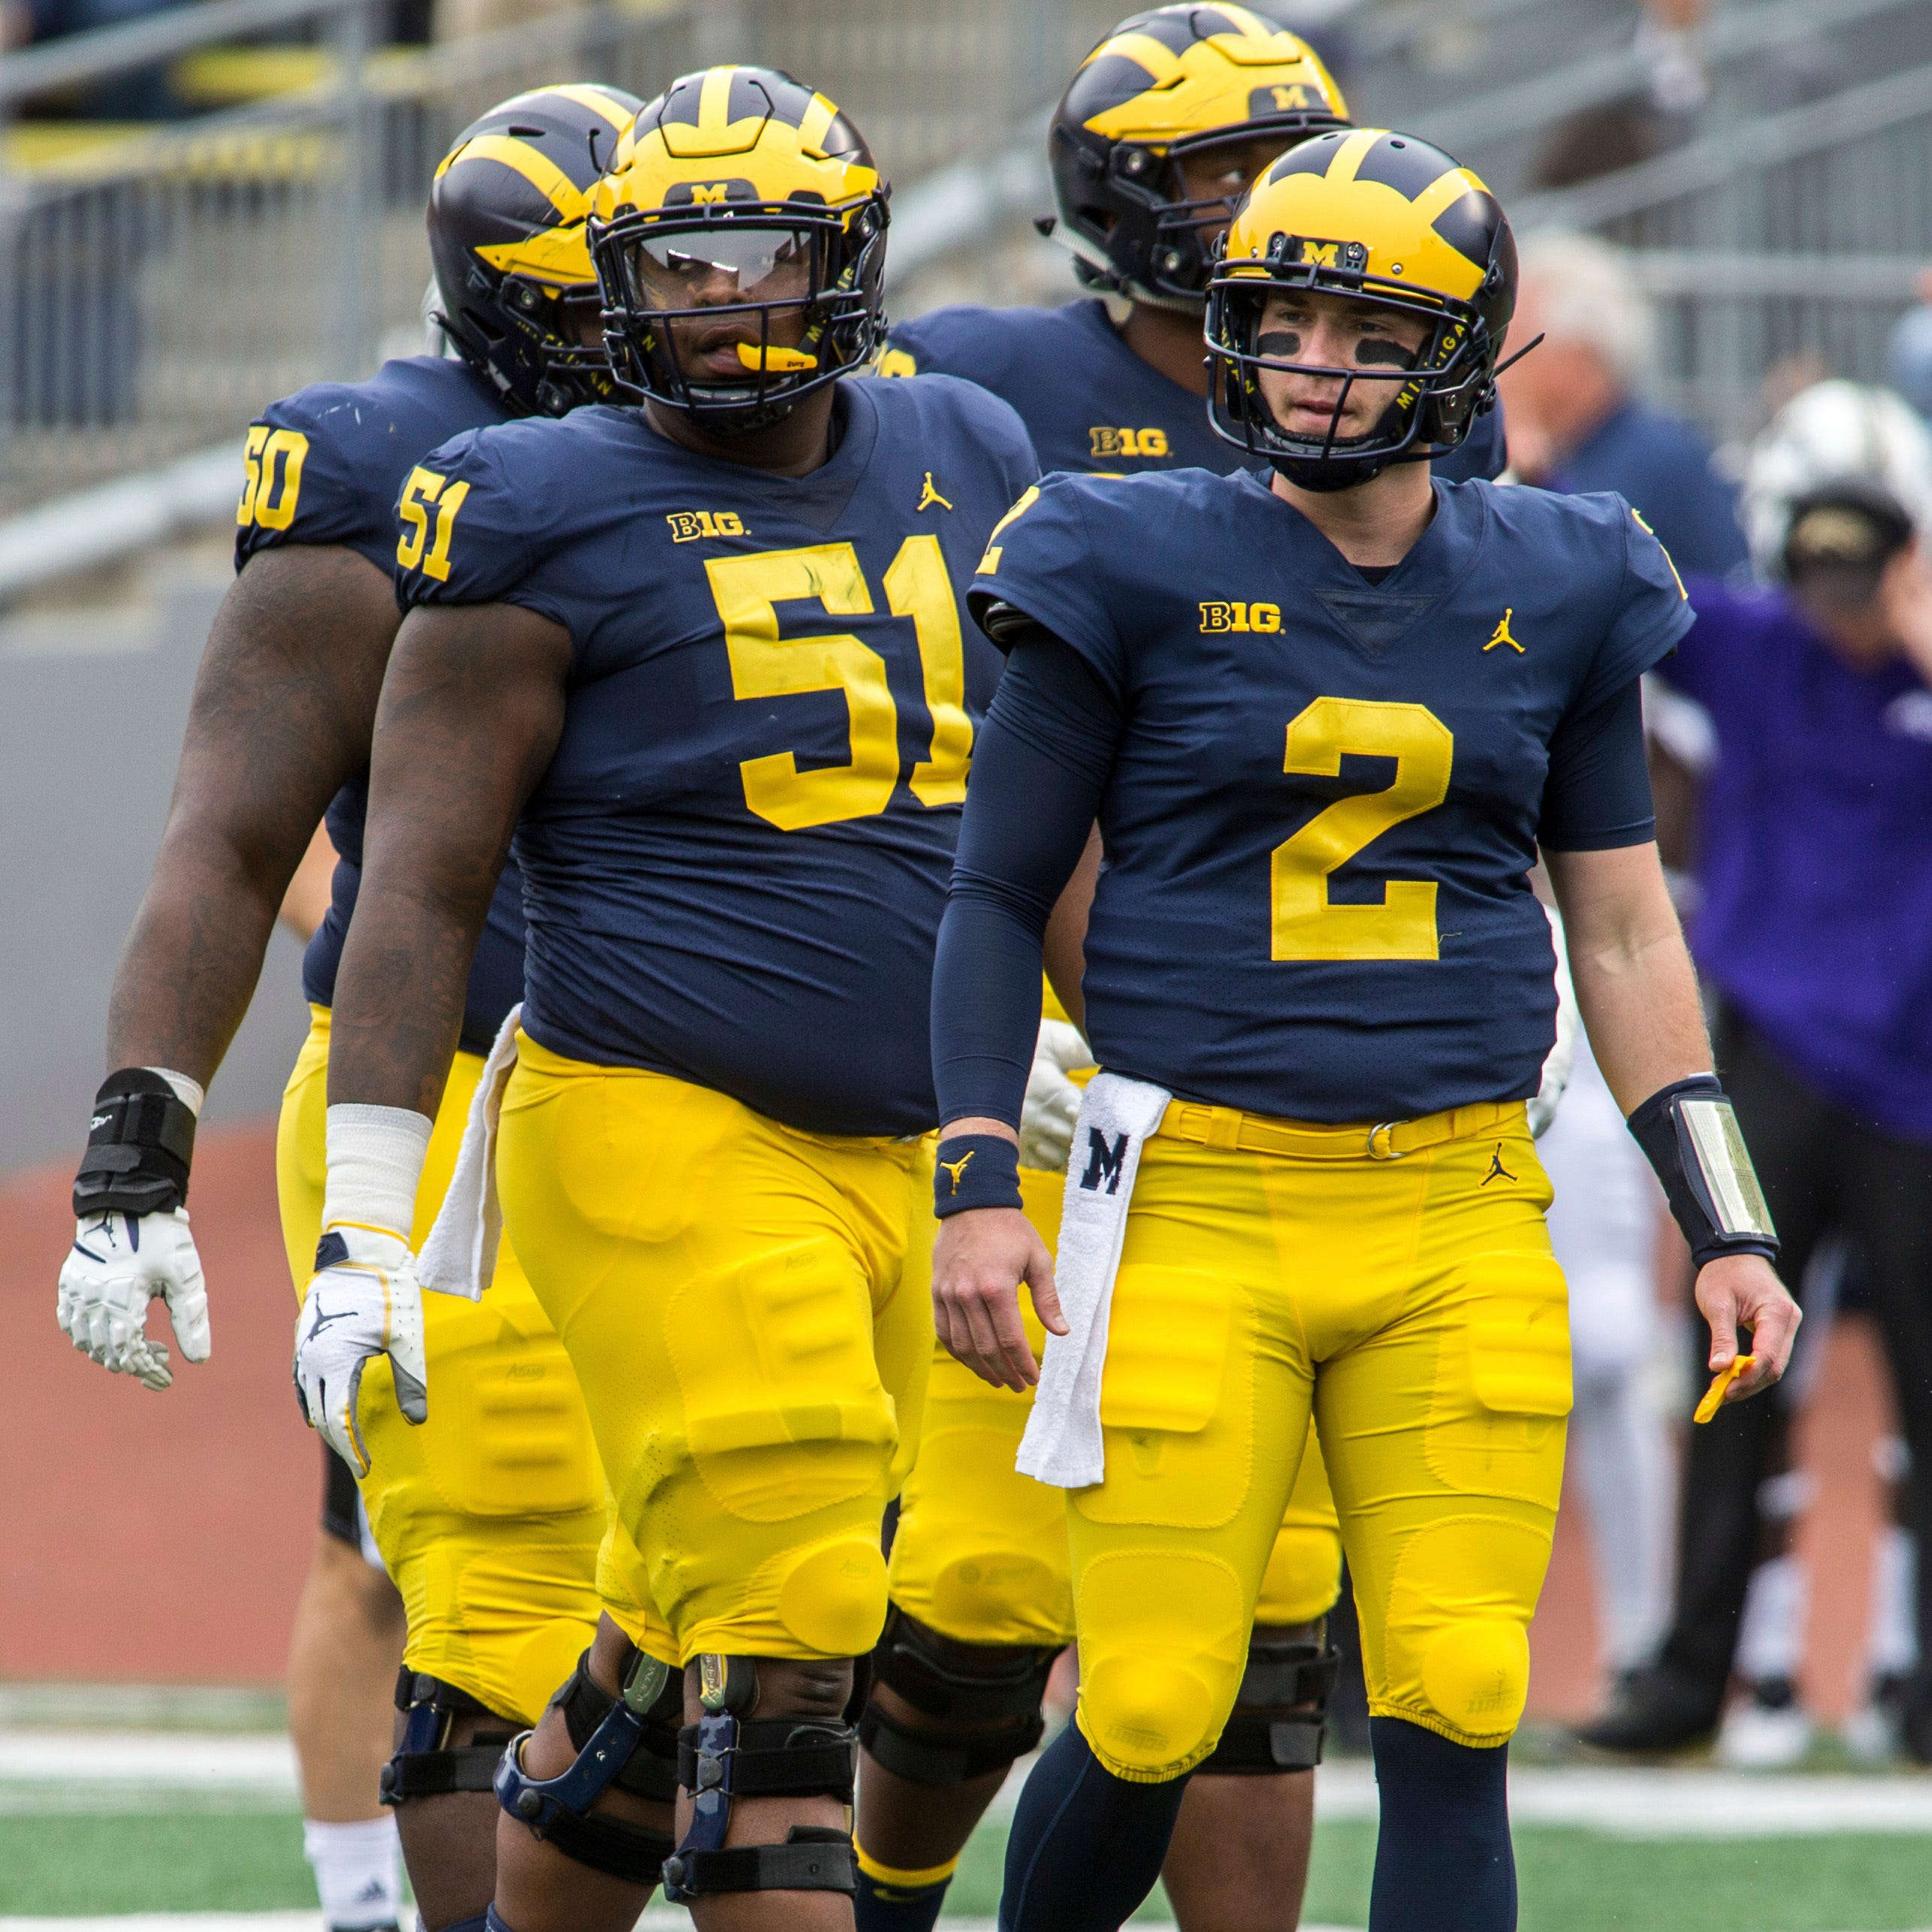 Cesar Ruiz handles 'heavy burden' of Michigan center job with ease